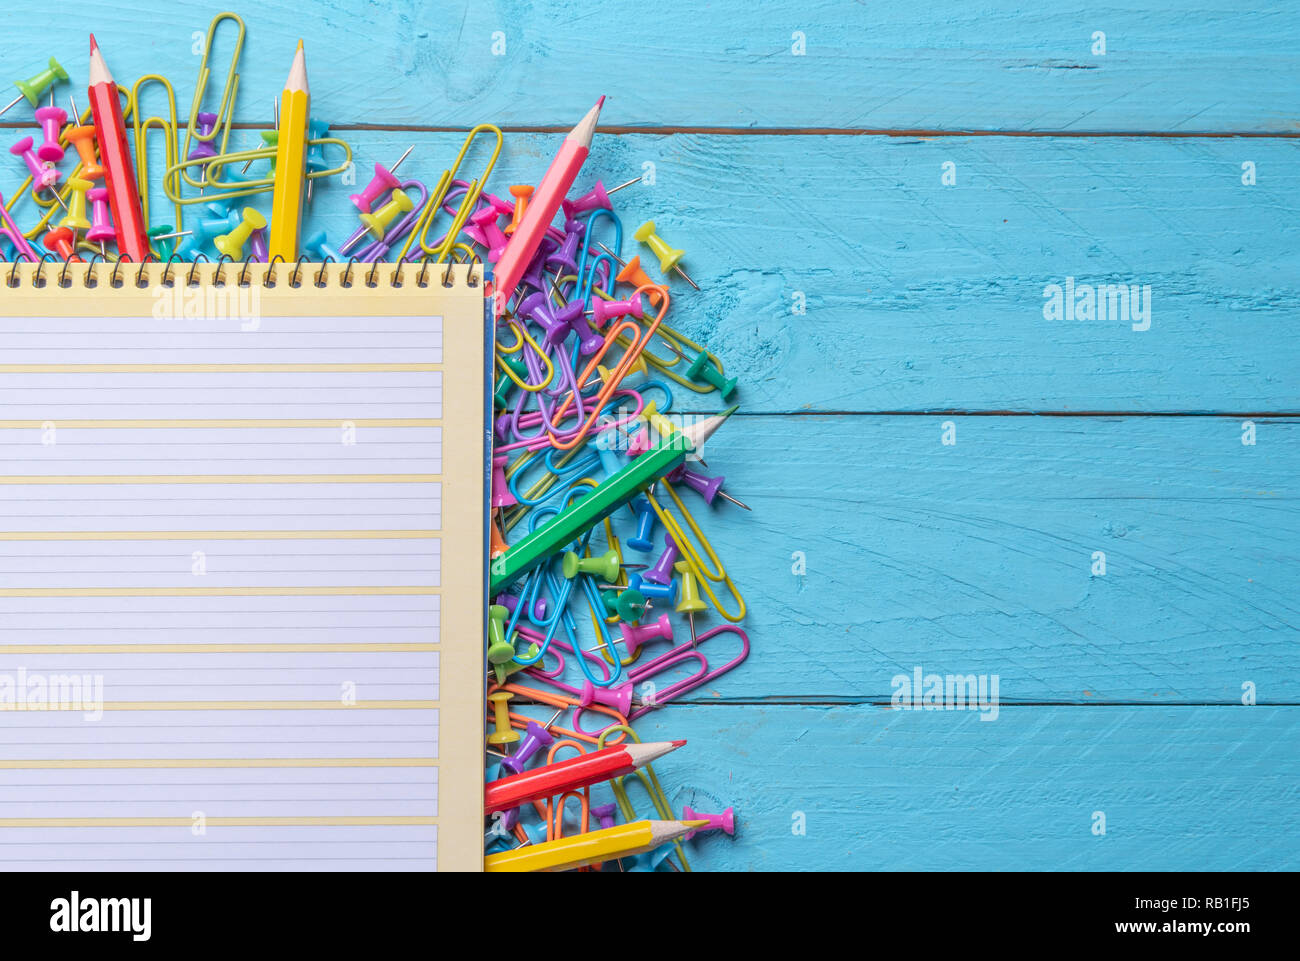 Spiral notebook on a pile of office objects, colored paper clips, crayons and push pins on a blue wooden table - Stock Image